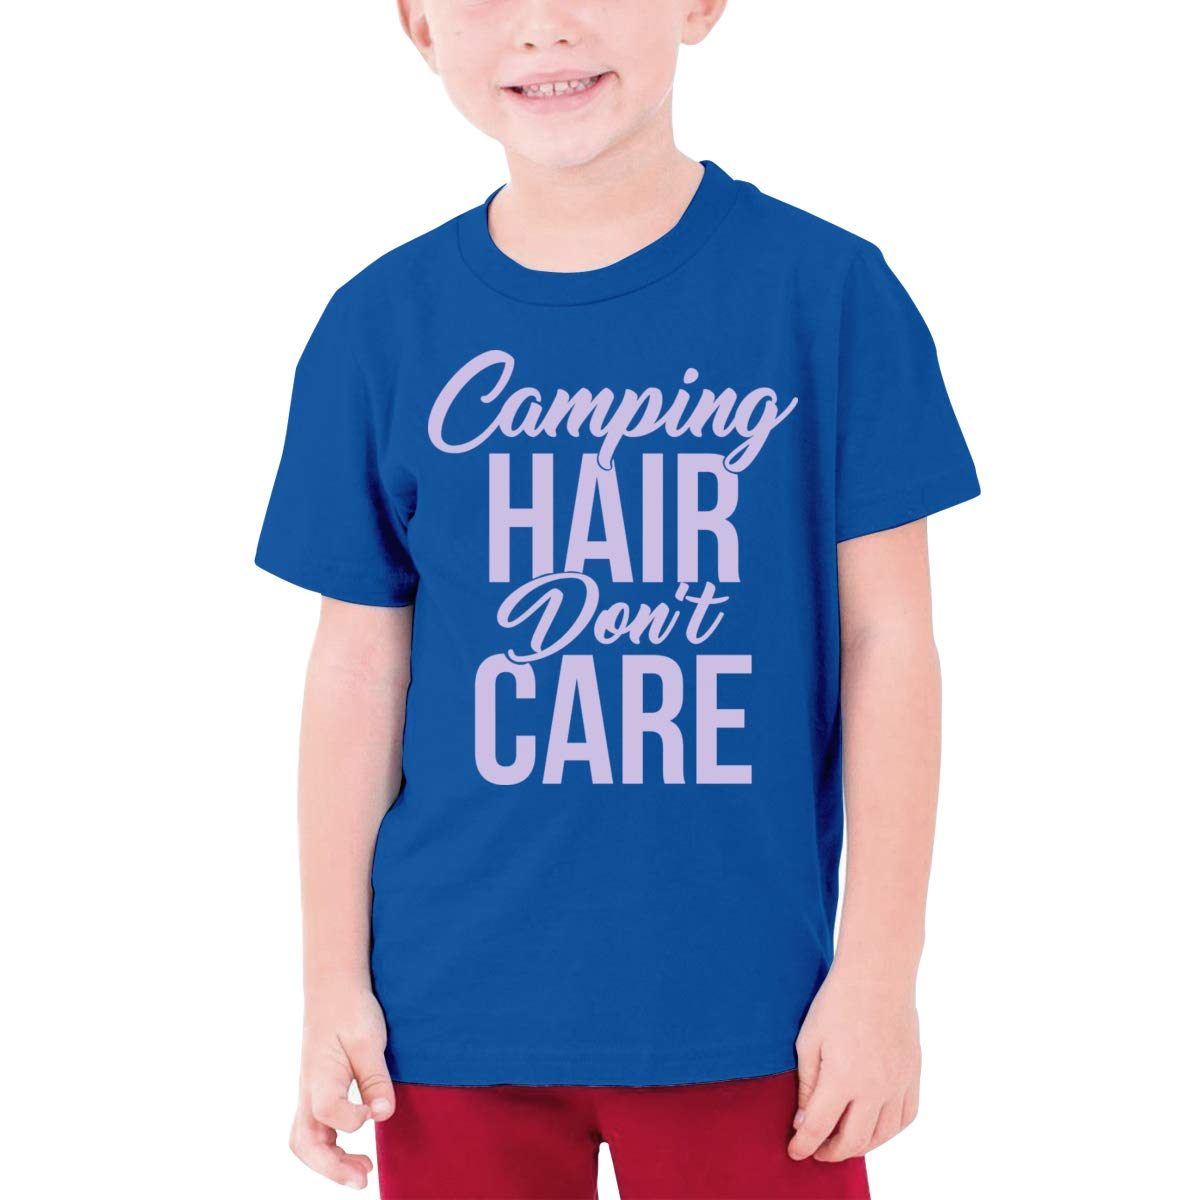 Fzjy Wnx Camping Hair Dont Care Boy Short-Sleeved T-Shirts